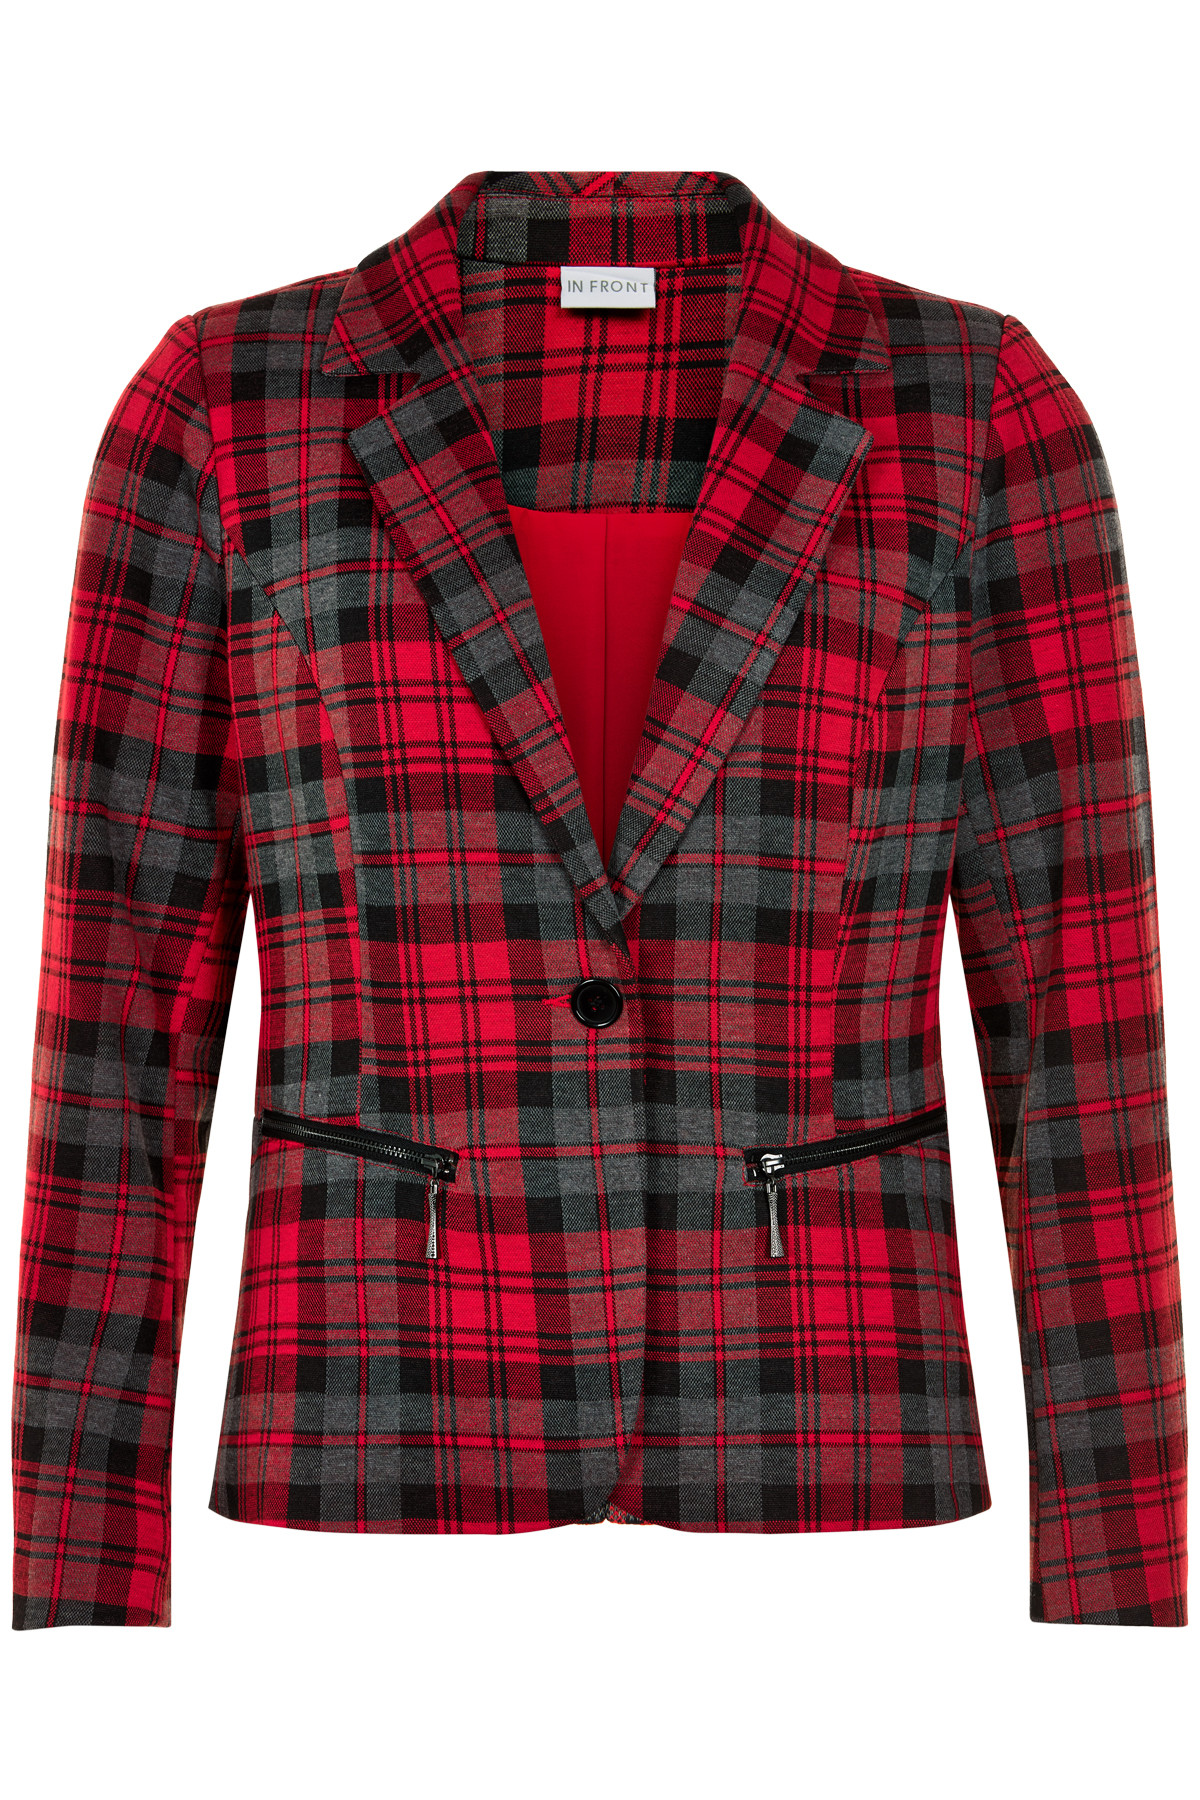 Image of   IN FRONT BERNICE CHECKED JAKKE 12848 (Red 409, L)